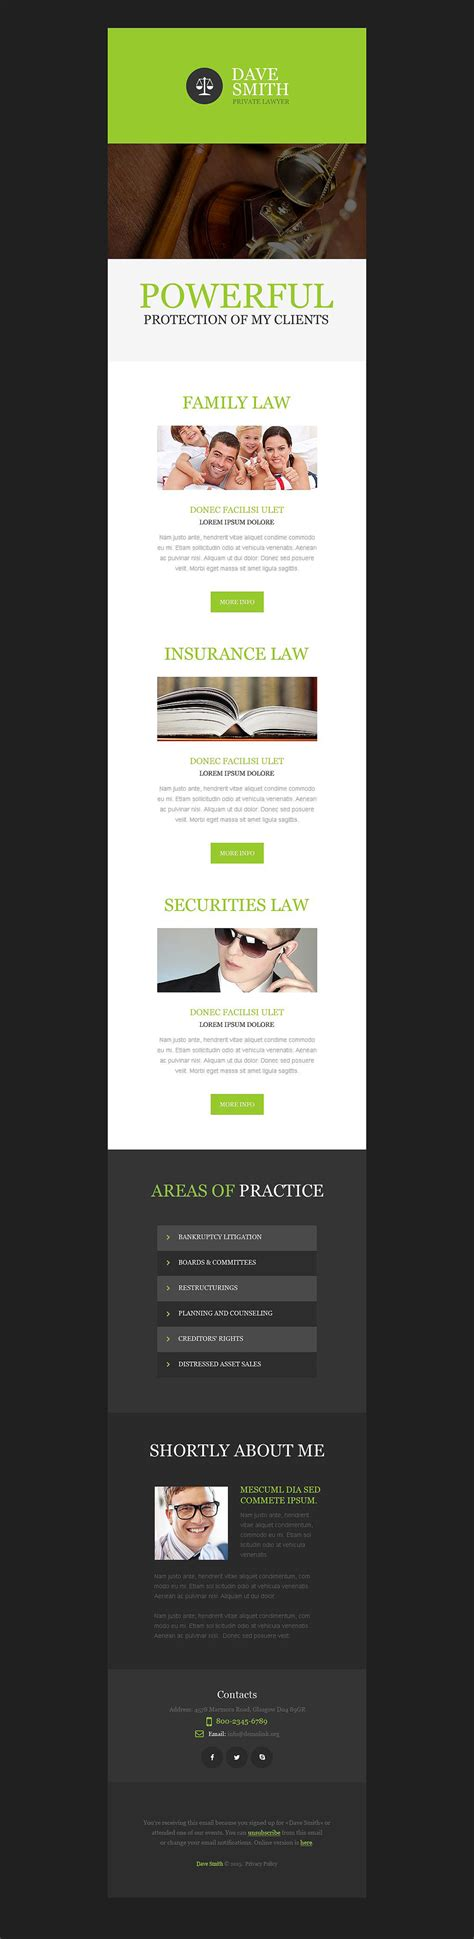 law firm newsletter template 53195